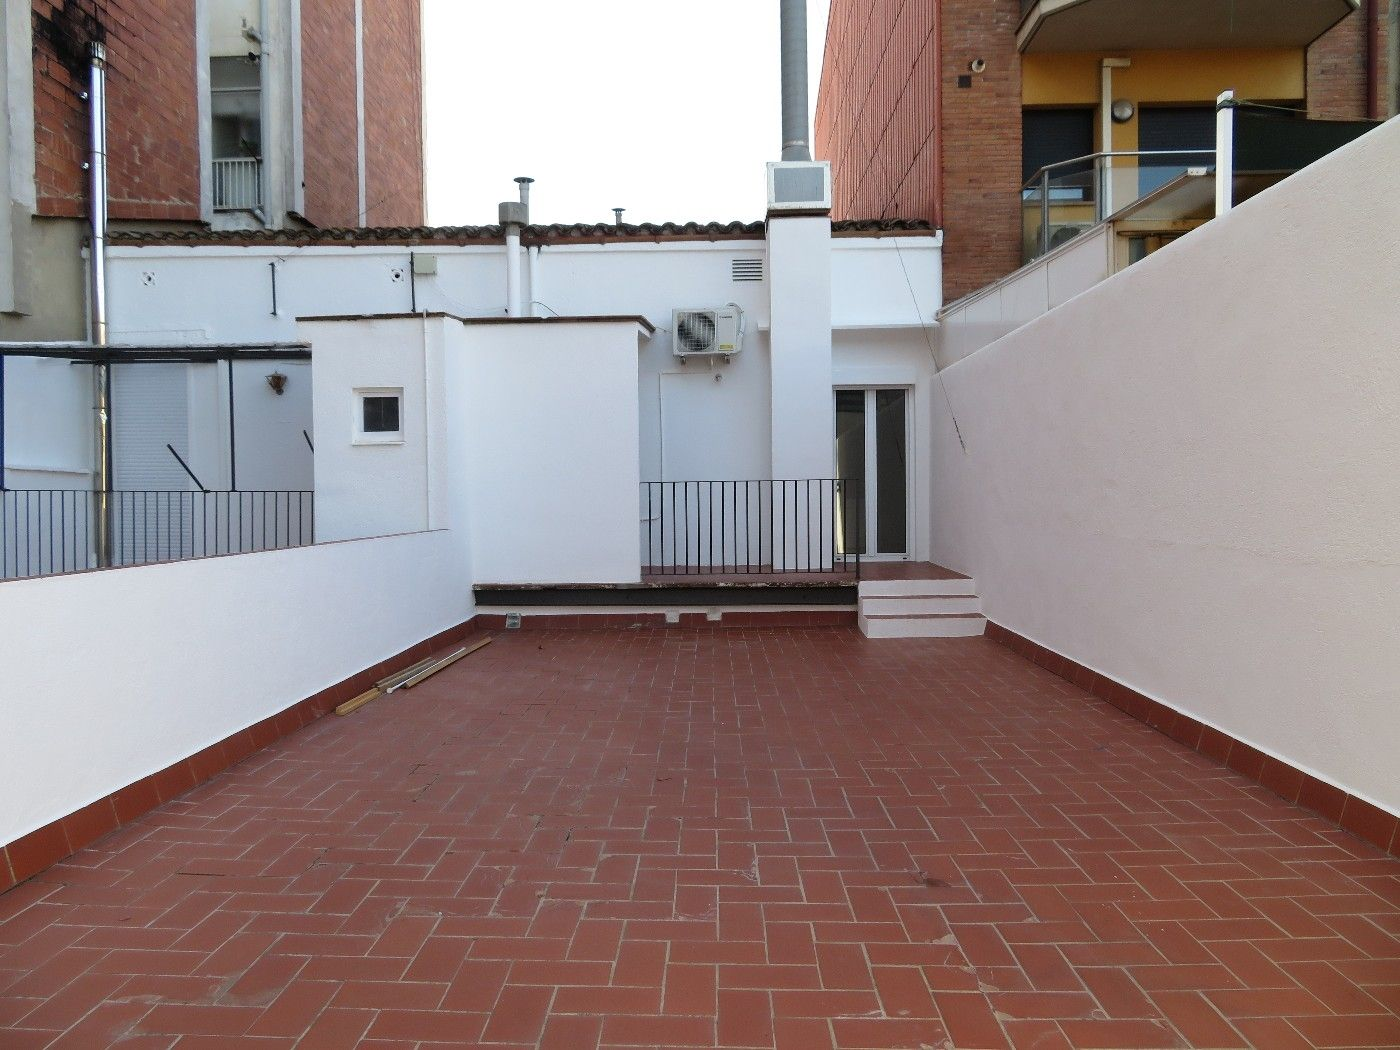 Location Appartement  Carrer francesc macia. Reformado,s/muebles.terraza 48m2